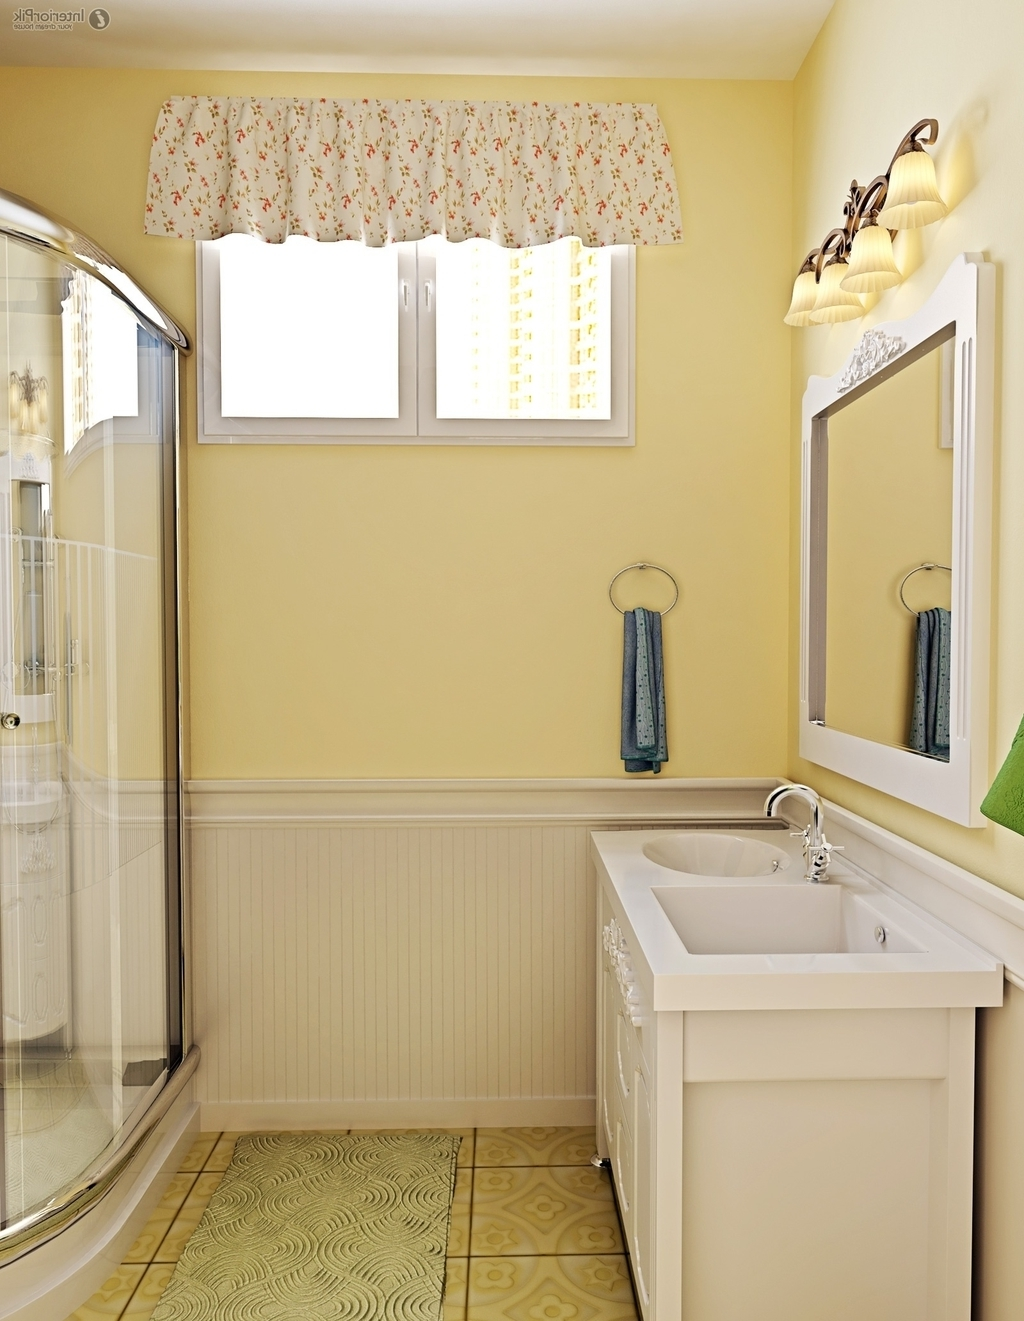 6×8 Bathroom Traditional Furniture And Color (View 3 of 12)